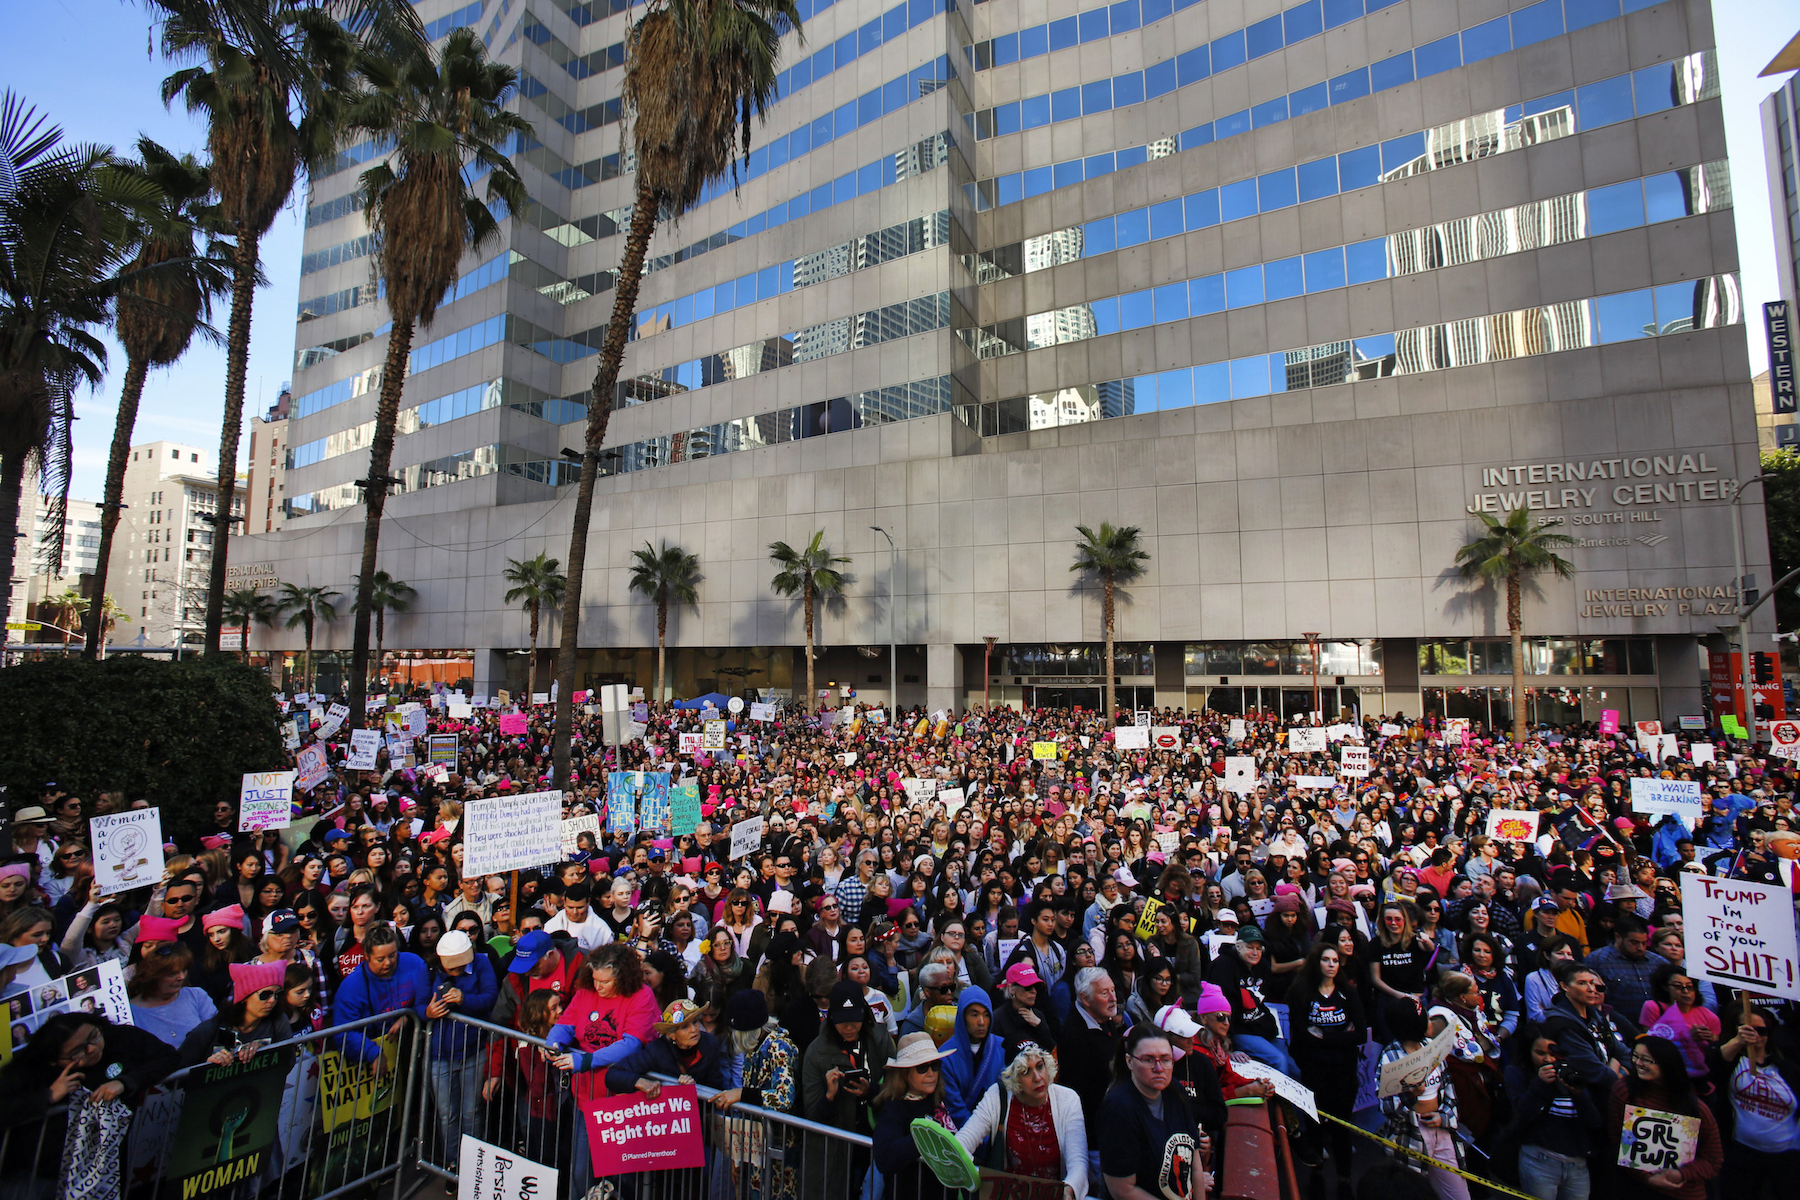 "<div class=""meta image-caption""><div class=""origin-logo origin-image ap""><span>AP</span></div><span class=""caption-text"">Demonstrators gather at Pershing Square during the start of the Women's March in Los Angeles on Saturday, Jan. 19, 2019.= (AP Photo/Damian Dovarganes)</span></div>"